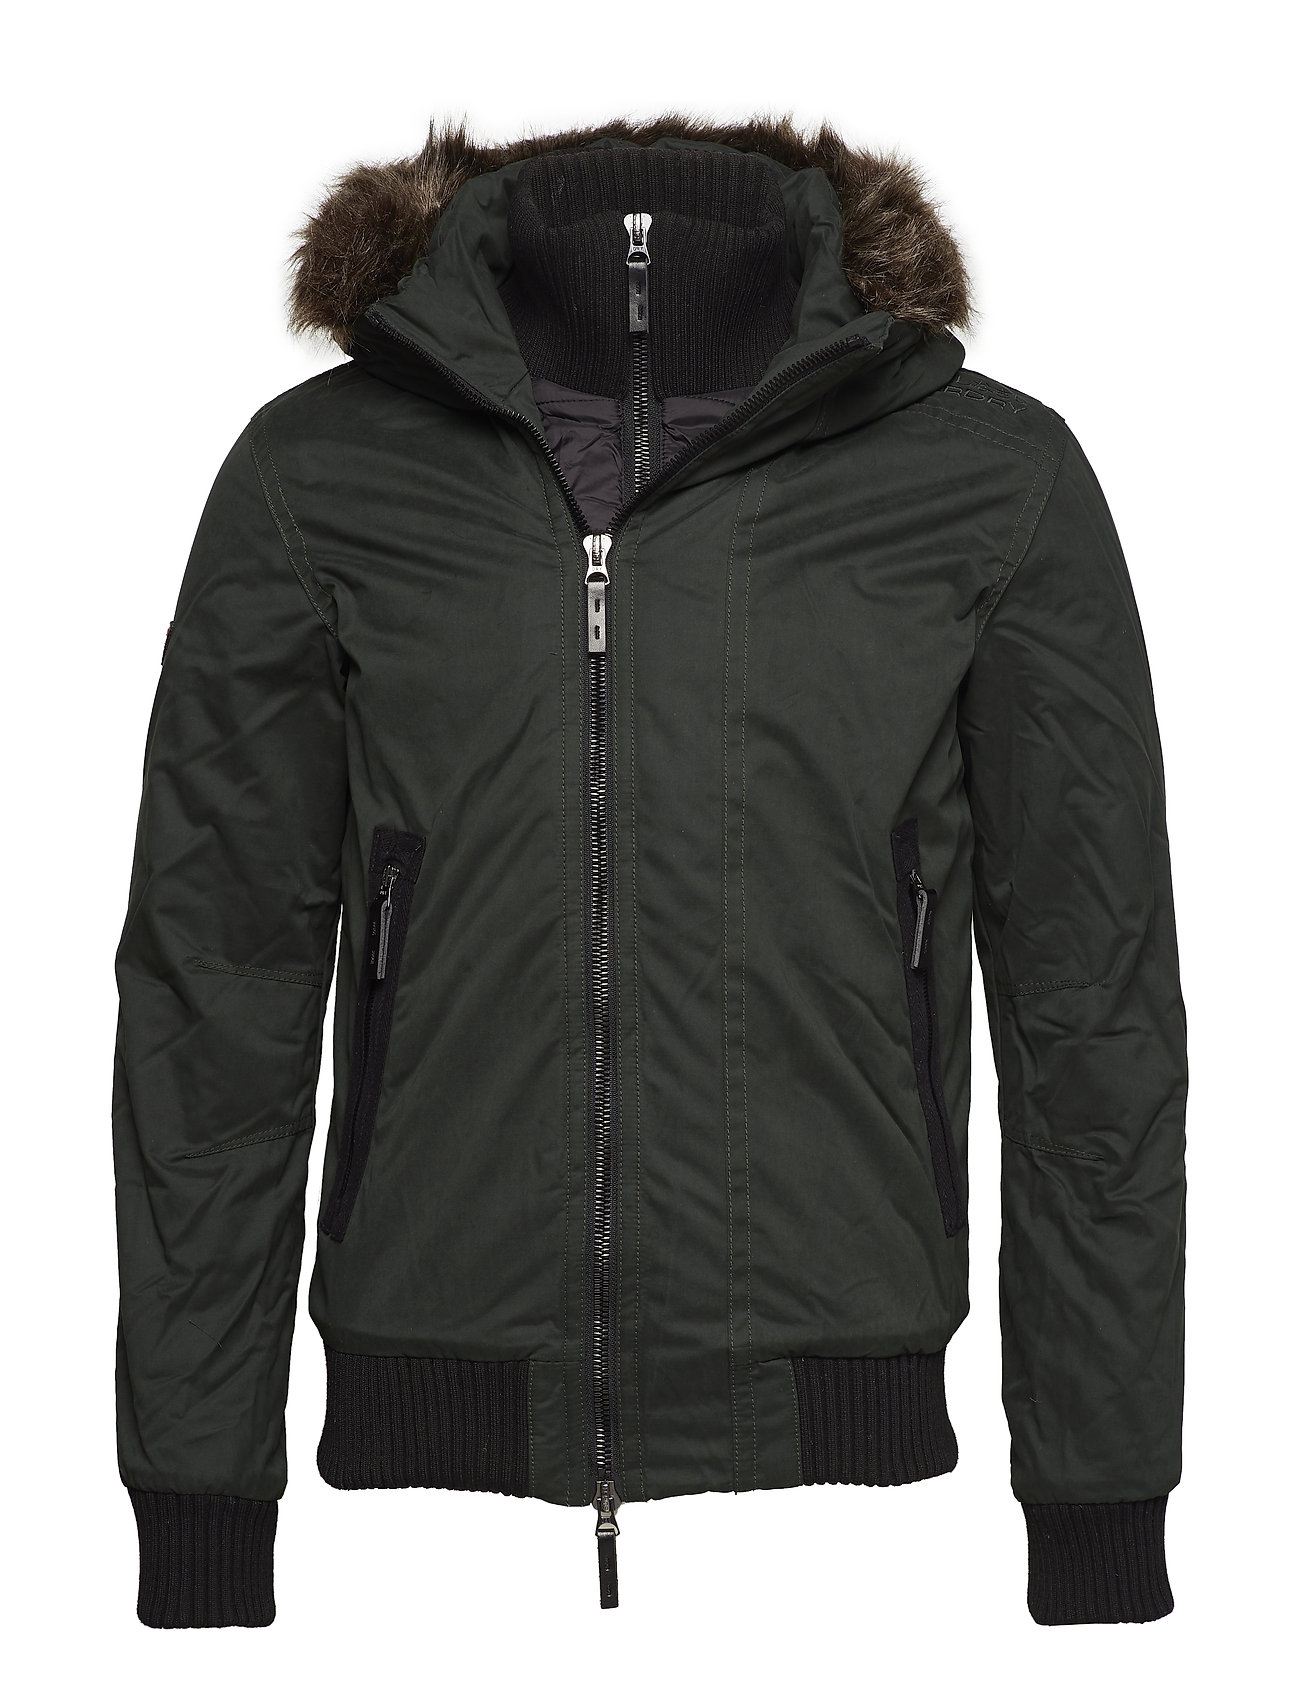 Superdry MICROFIBRE WIND BOMBER - IVY GREEN